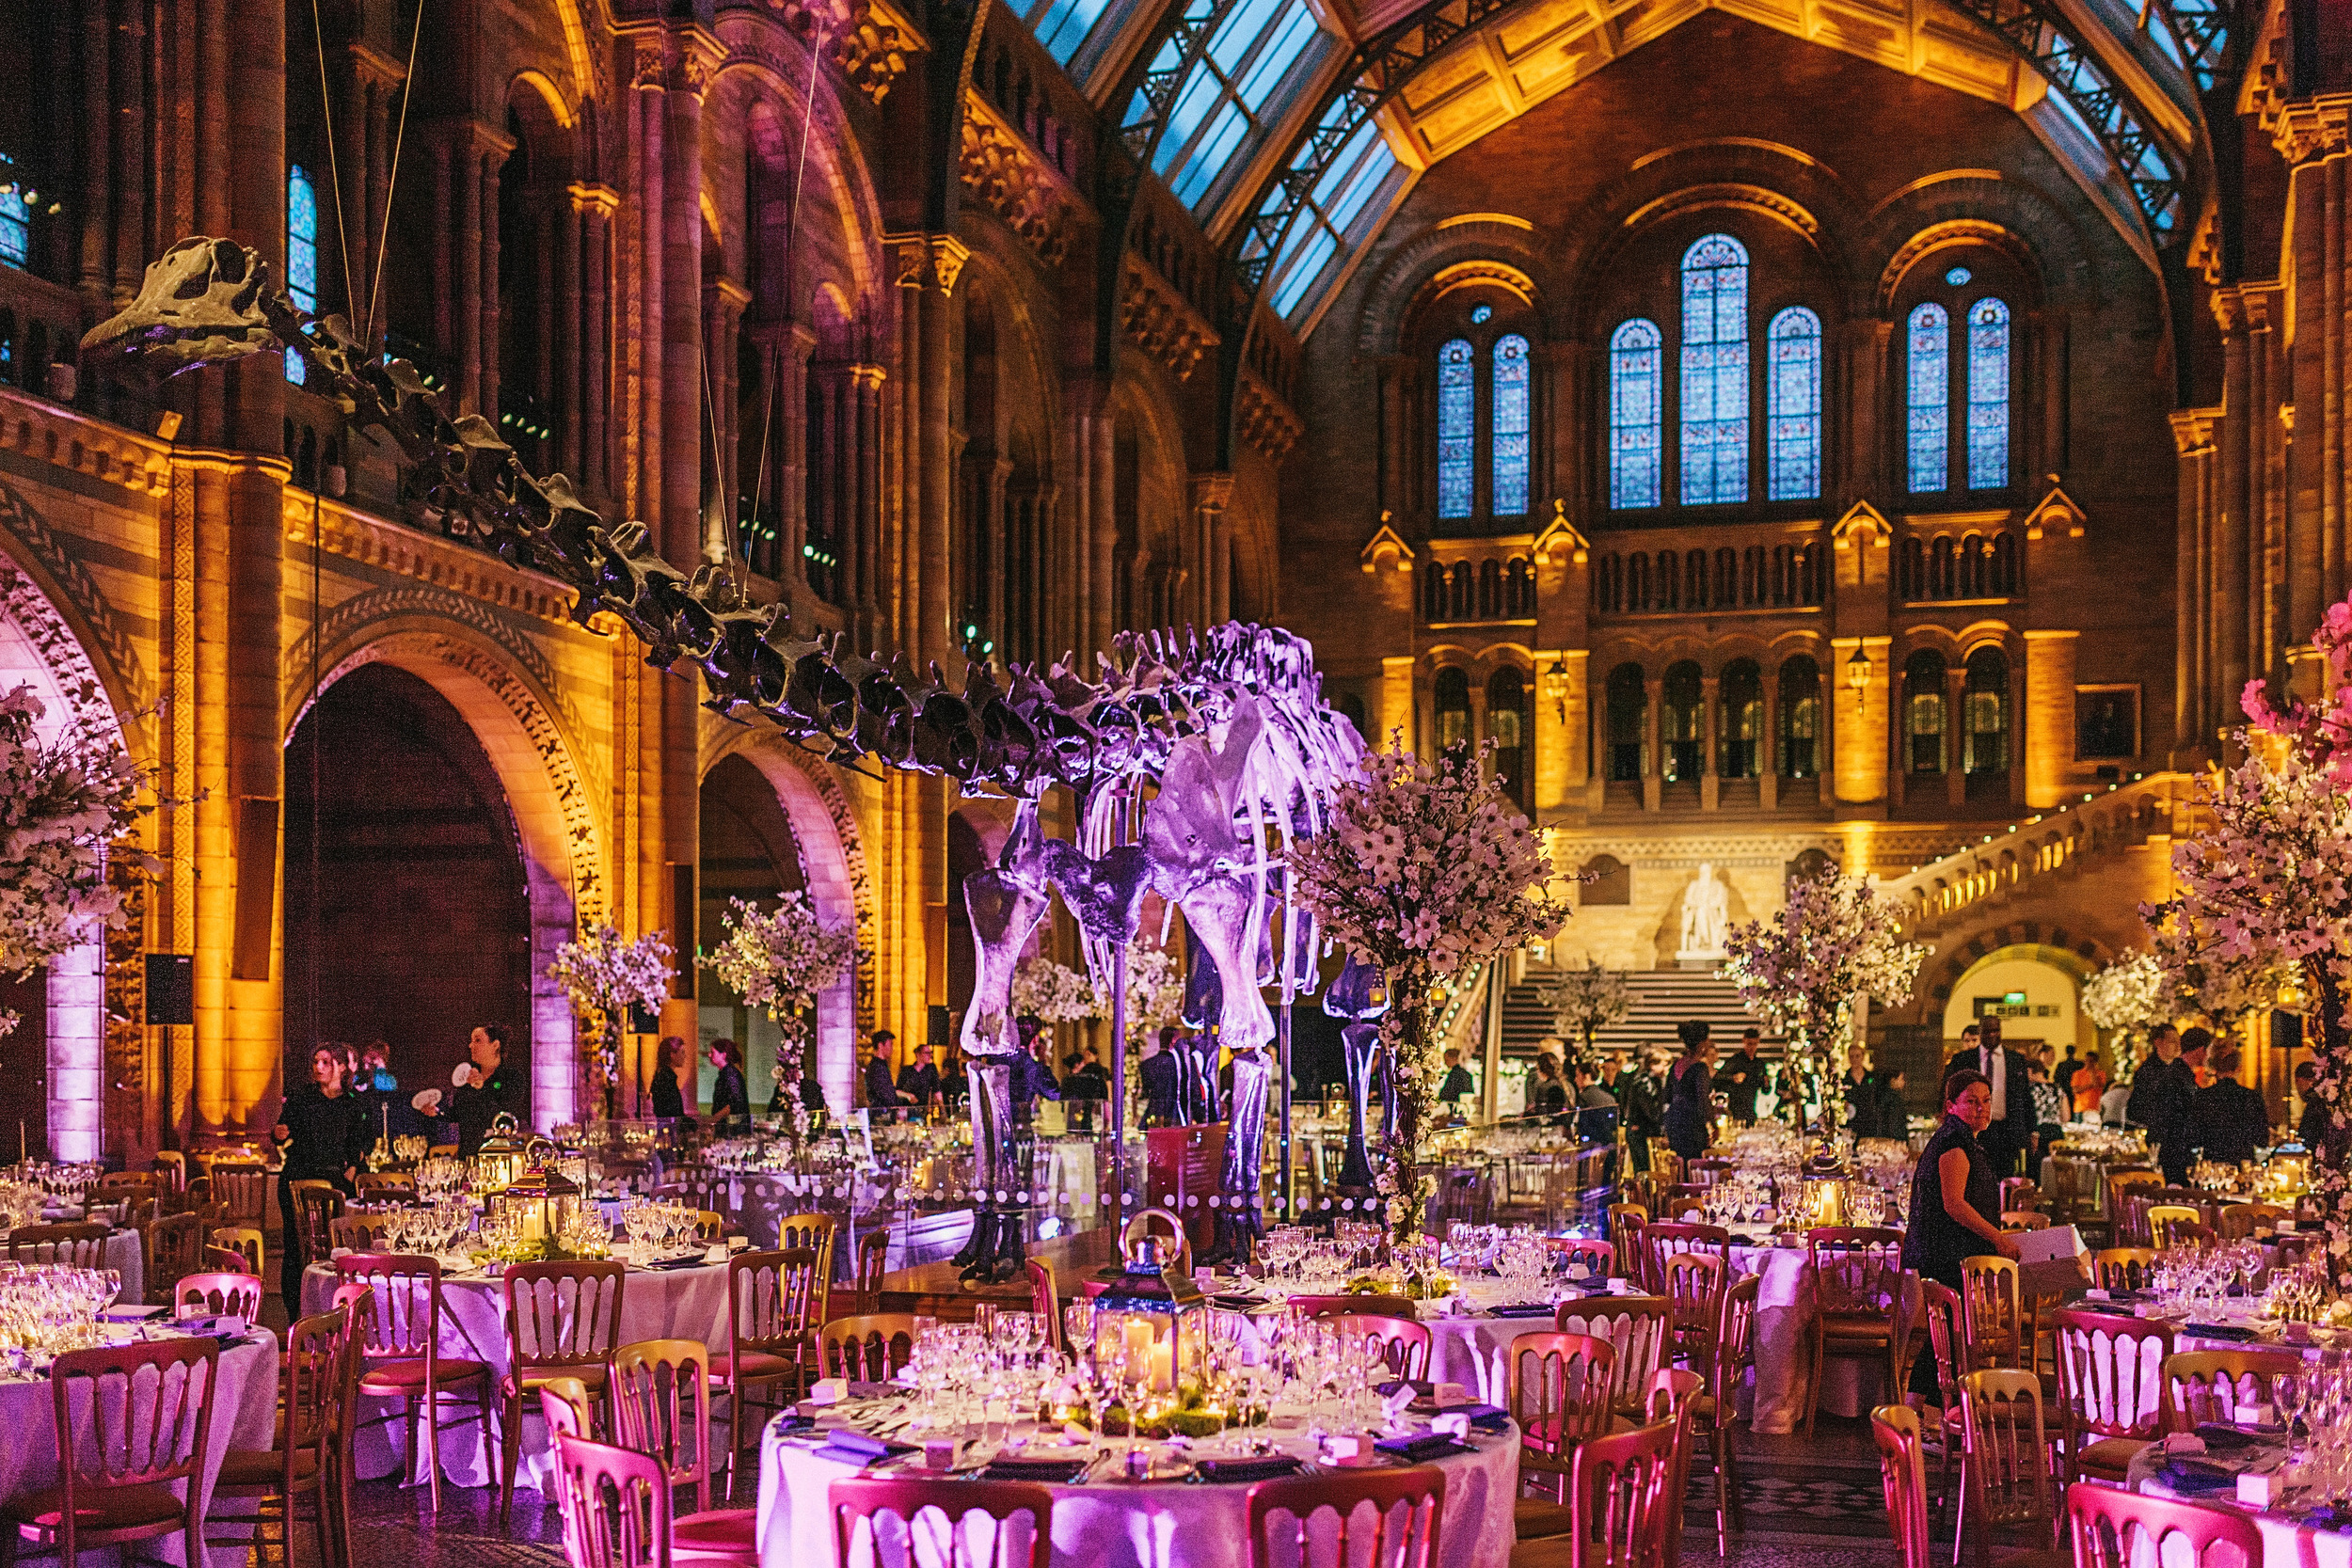 Wedding Videography Still - The Great Hall in The Natural History Museum